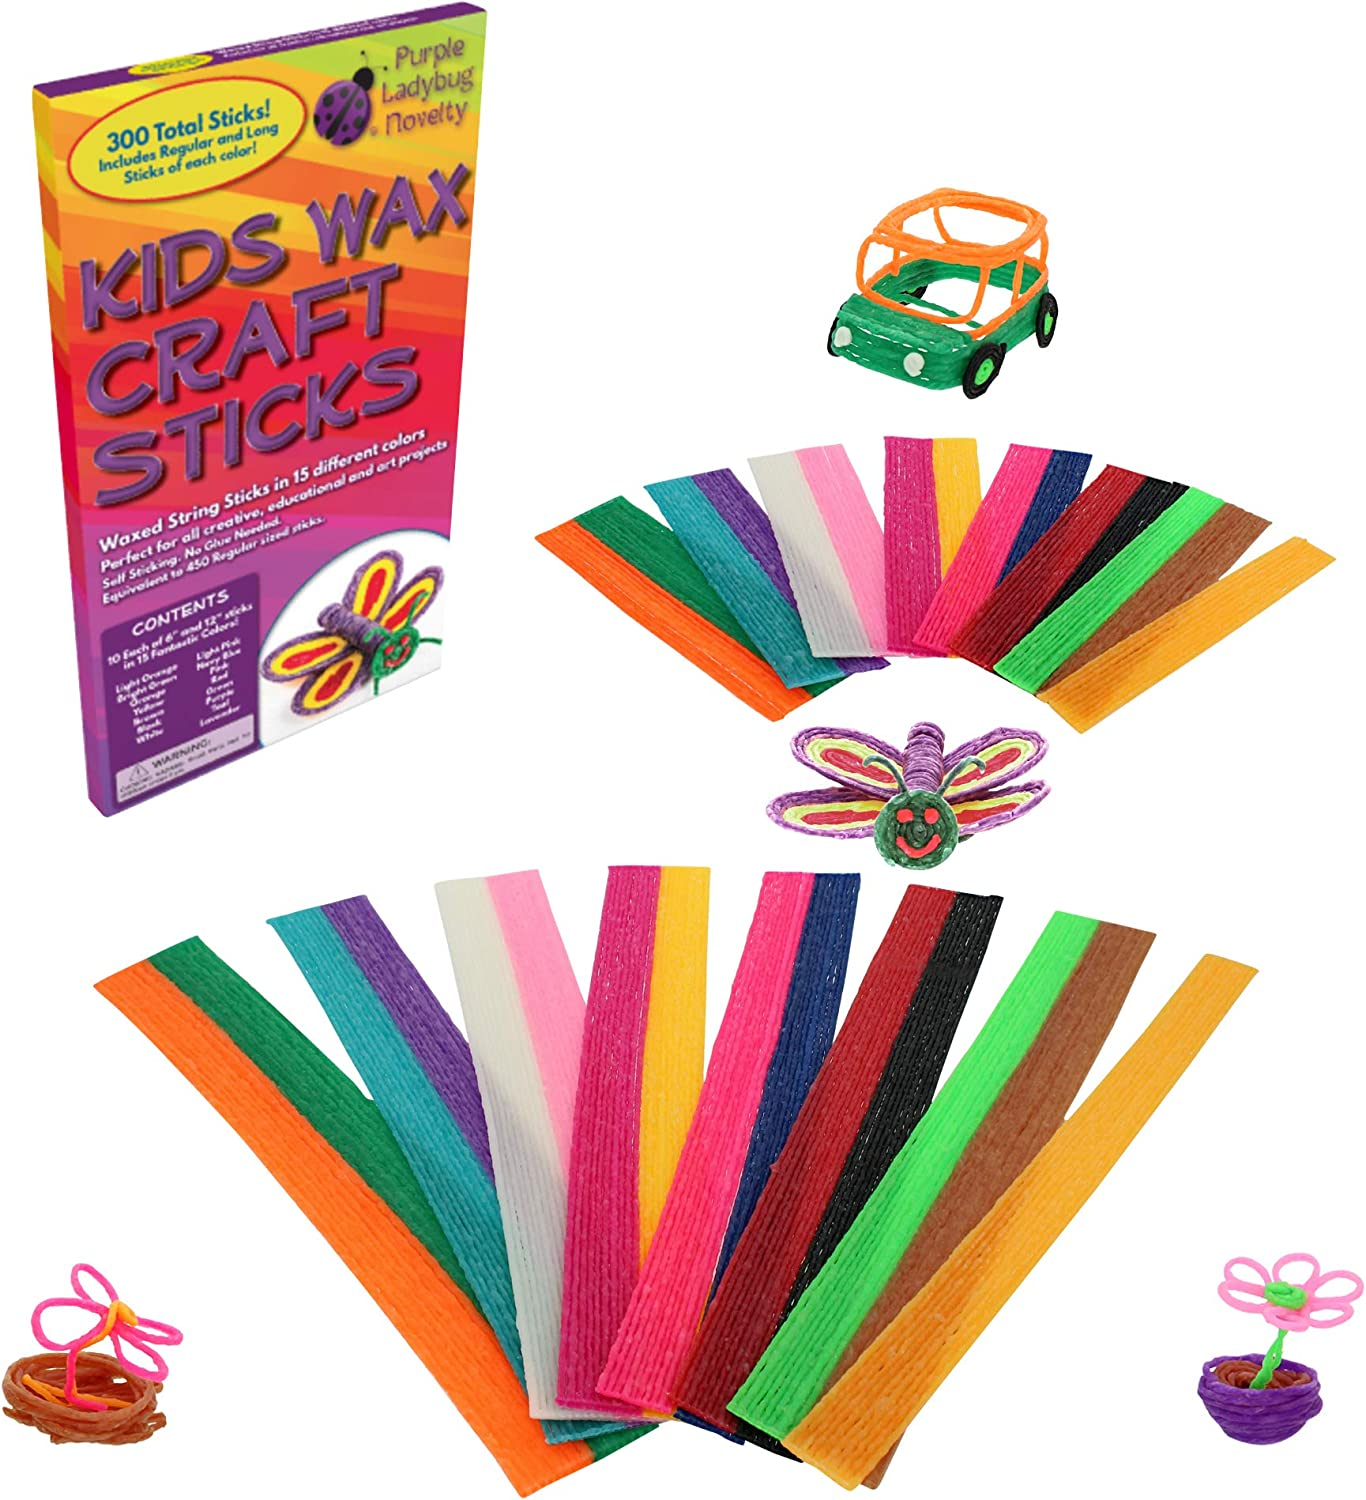 Mega Mix Pack of Kids Wax Craft Sticks: 15 Colors, 2 Lengths - 6 Inch Standard and 12 Inch Super Long, 150 of Each! Non-Toxic Wax Stix, Kid Art Supplies with no Mess, Great as Travel Toys!